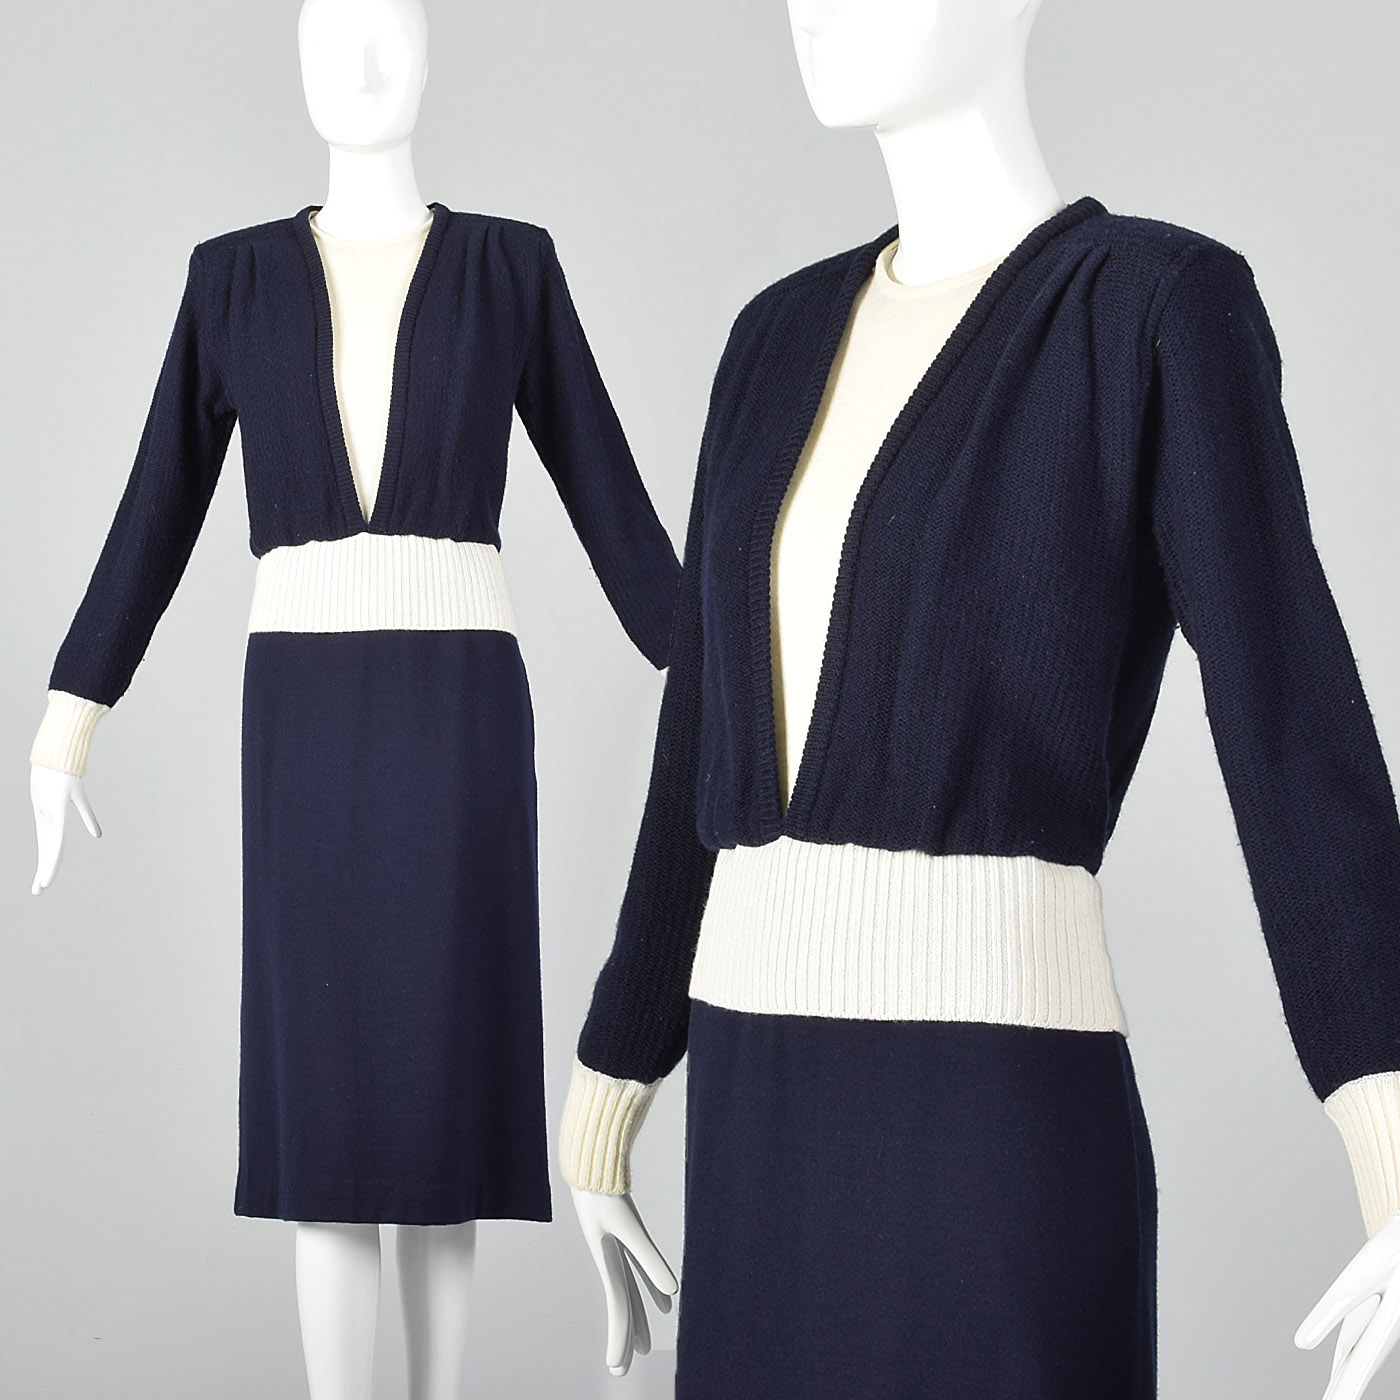 20b85e40de4 Details about M 1980s Navy Wool Knit Sweater Dress Long Sleeves Fall Autumn  Casual Outfit 80s